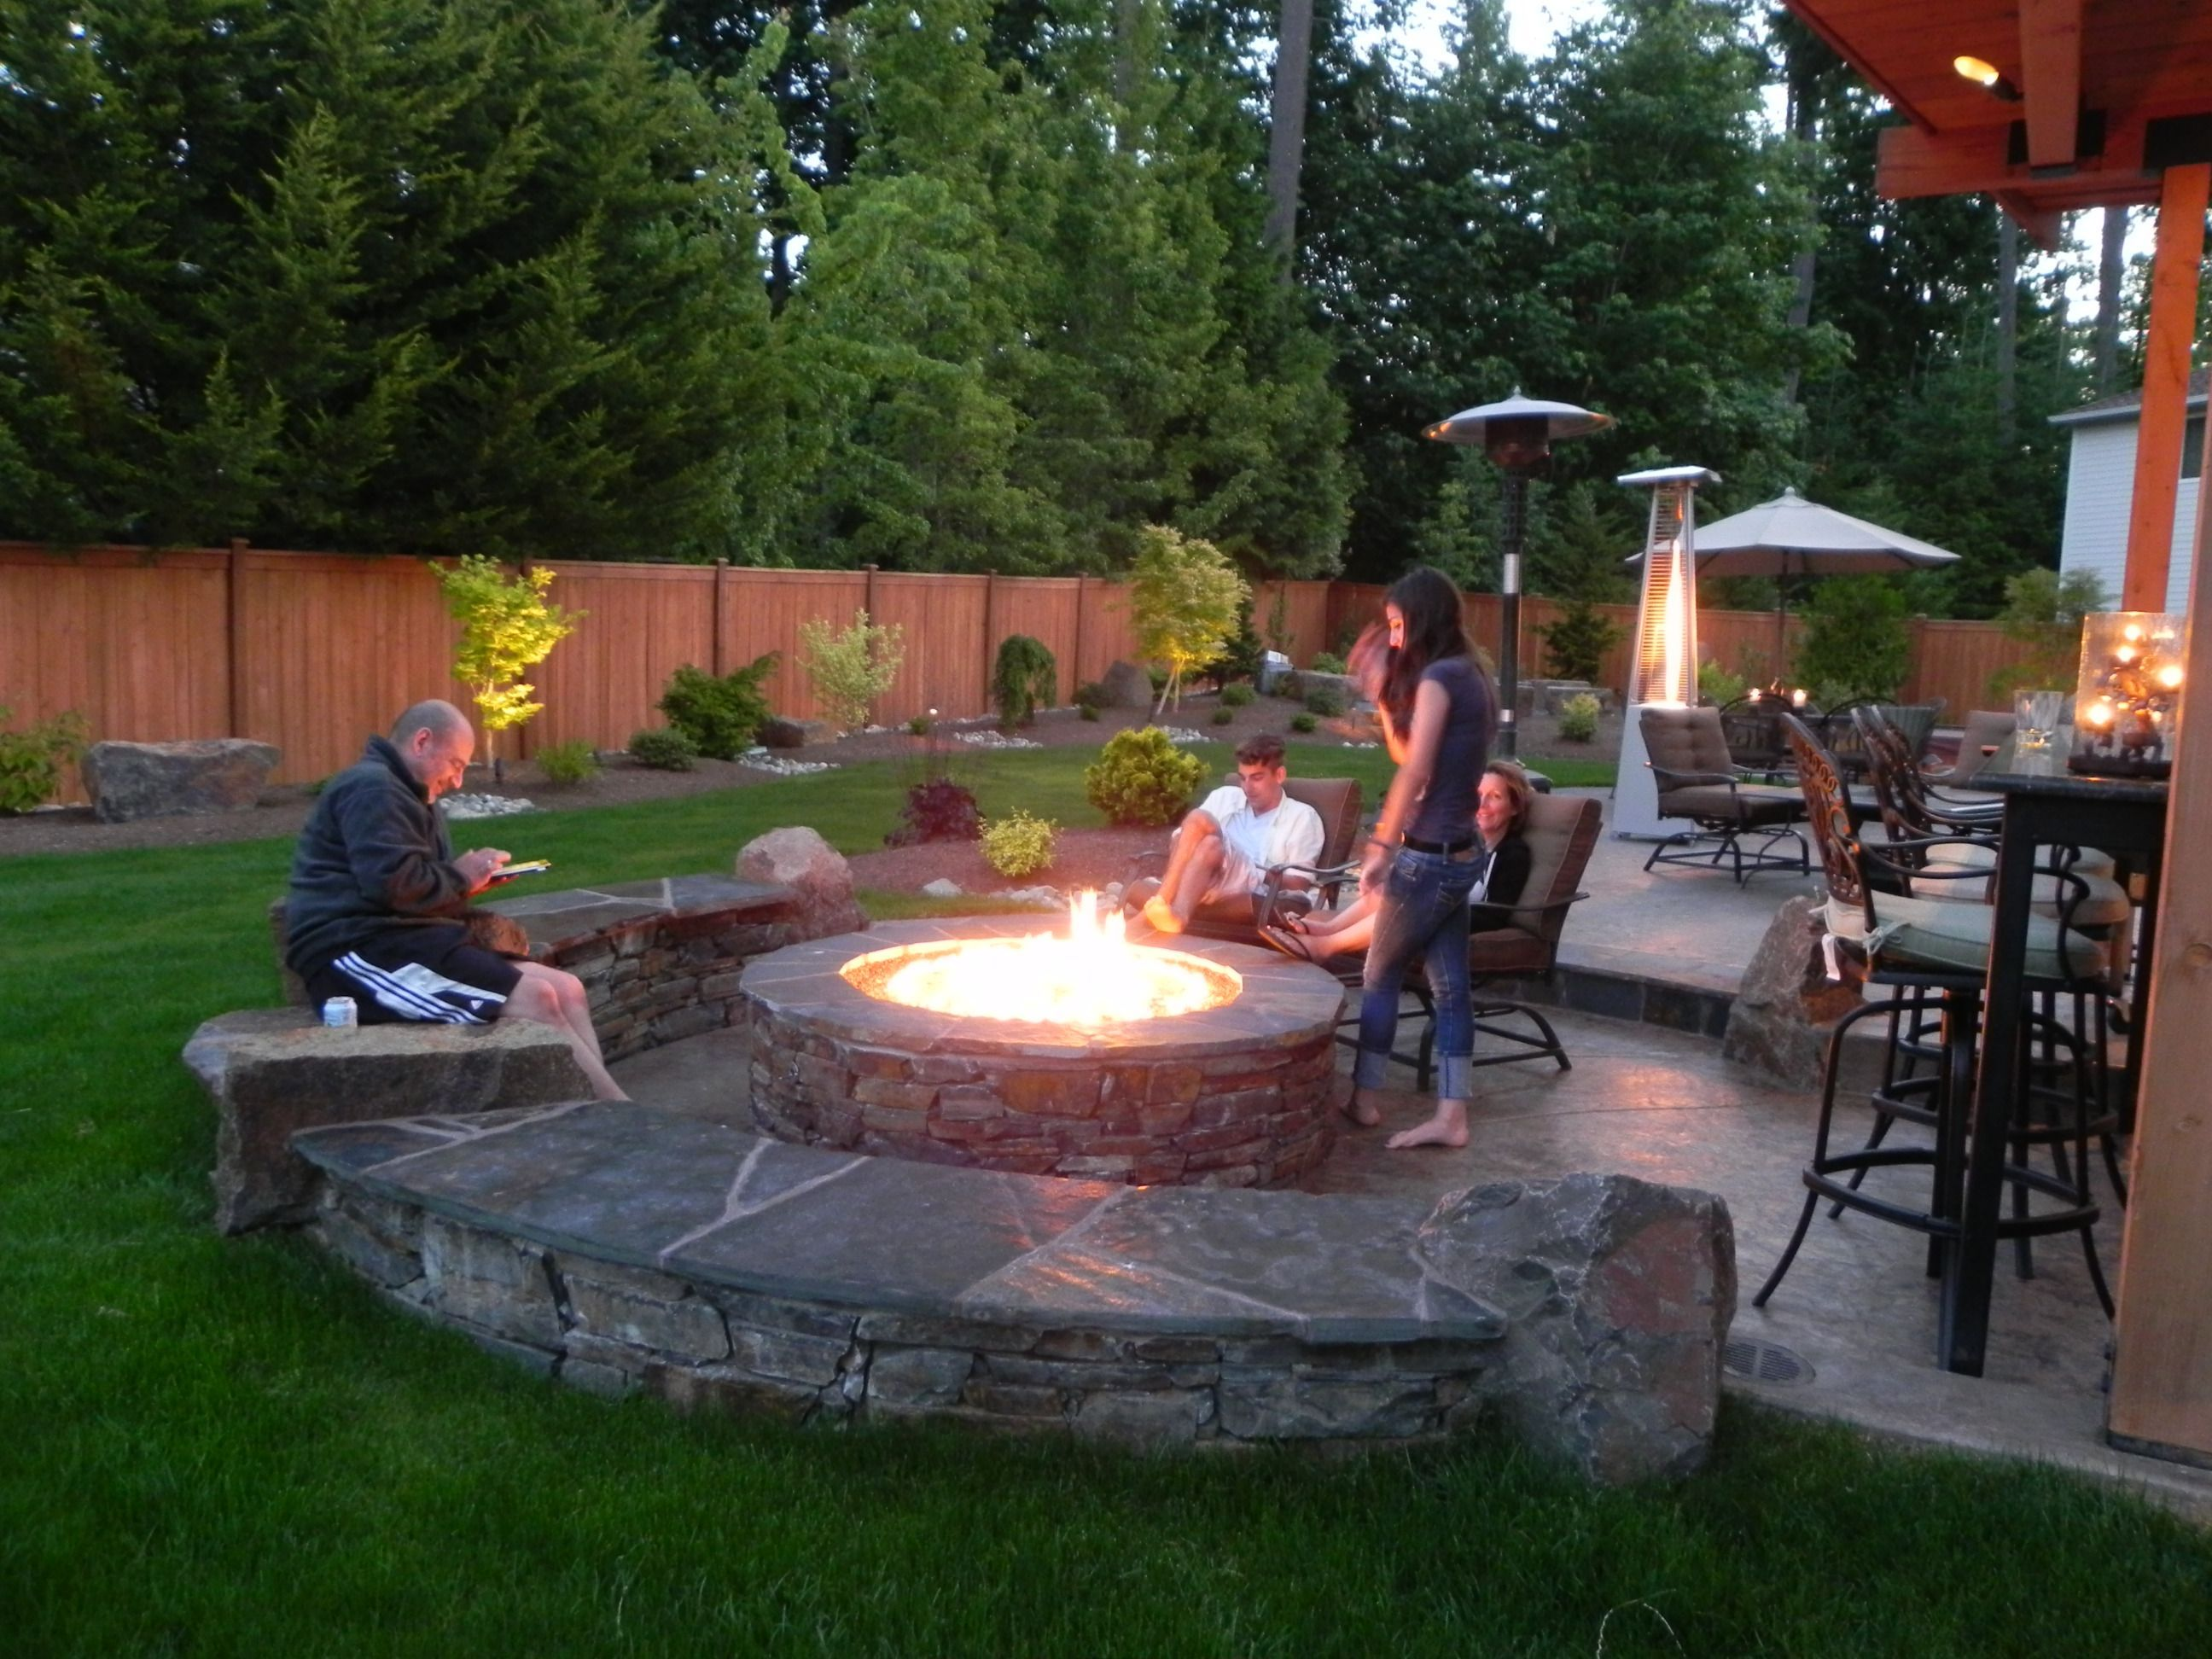 garden design with backyard fire pit ideas best on outdoor fireplace adorable and cheap fascinating wood burning purple heart plant - Outdoor Fire Pit Design Ideas